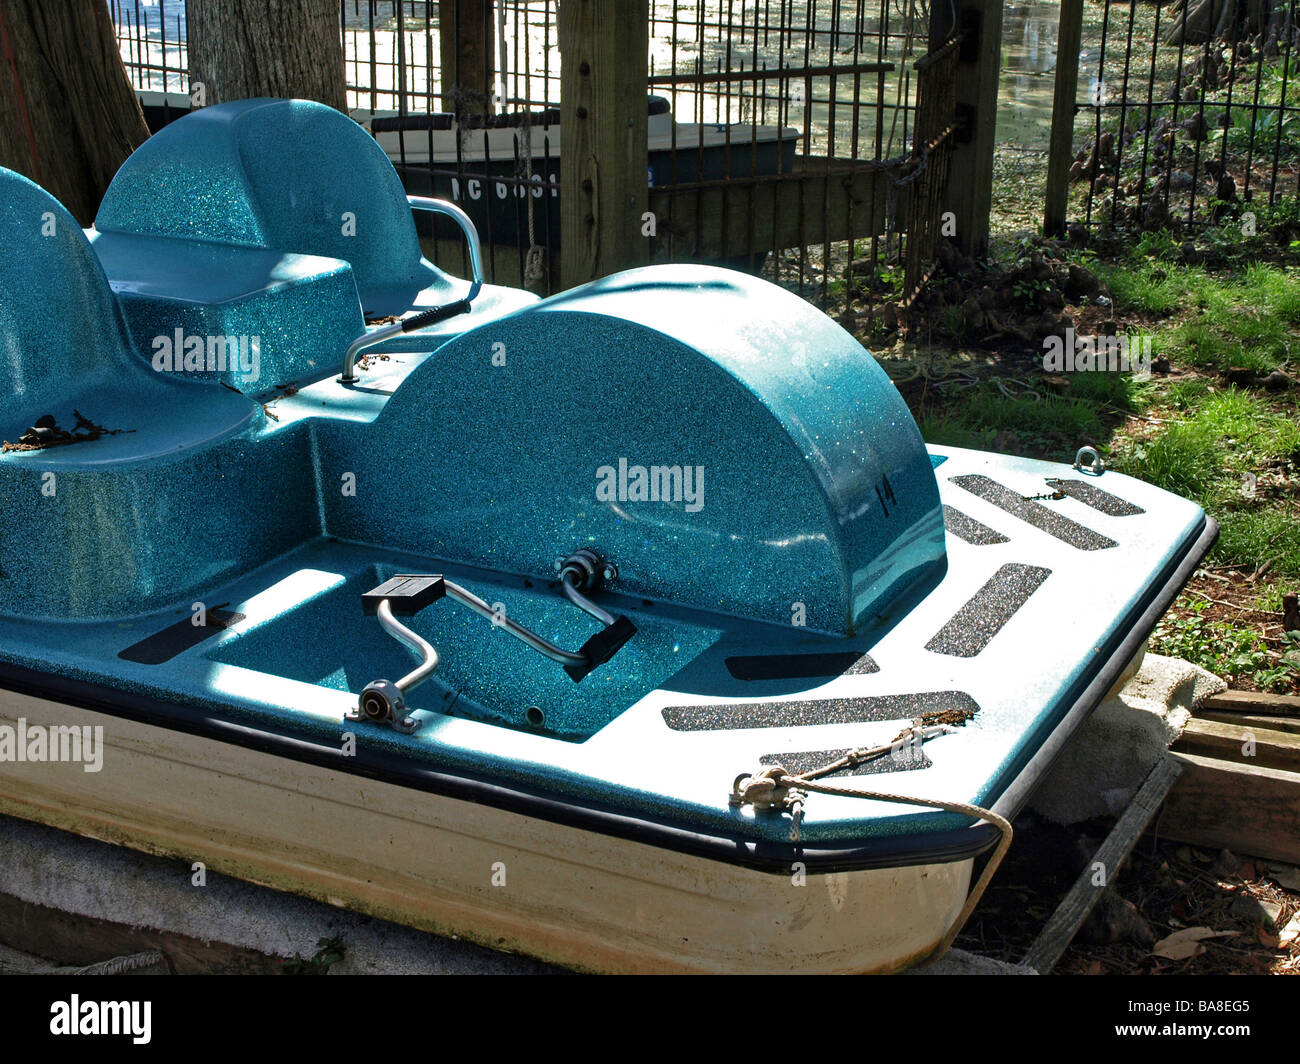 peddle wheel boat peddleboat on shore in deep tourquoise with pedals seats deck and grips - Stock Image